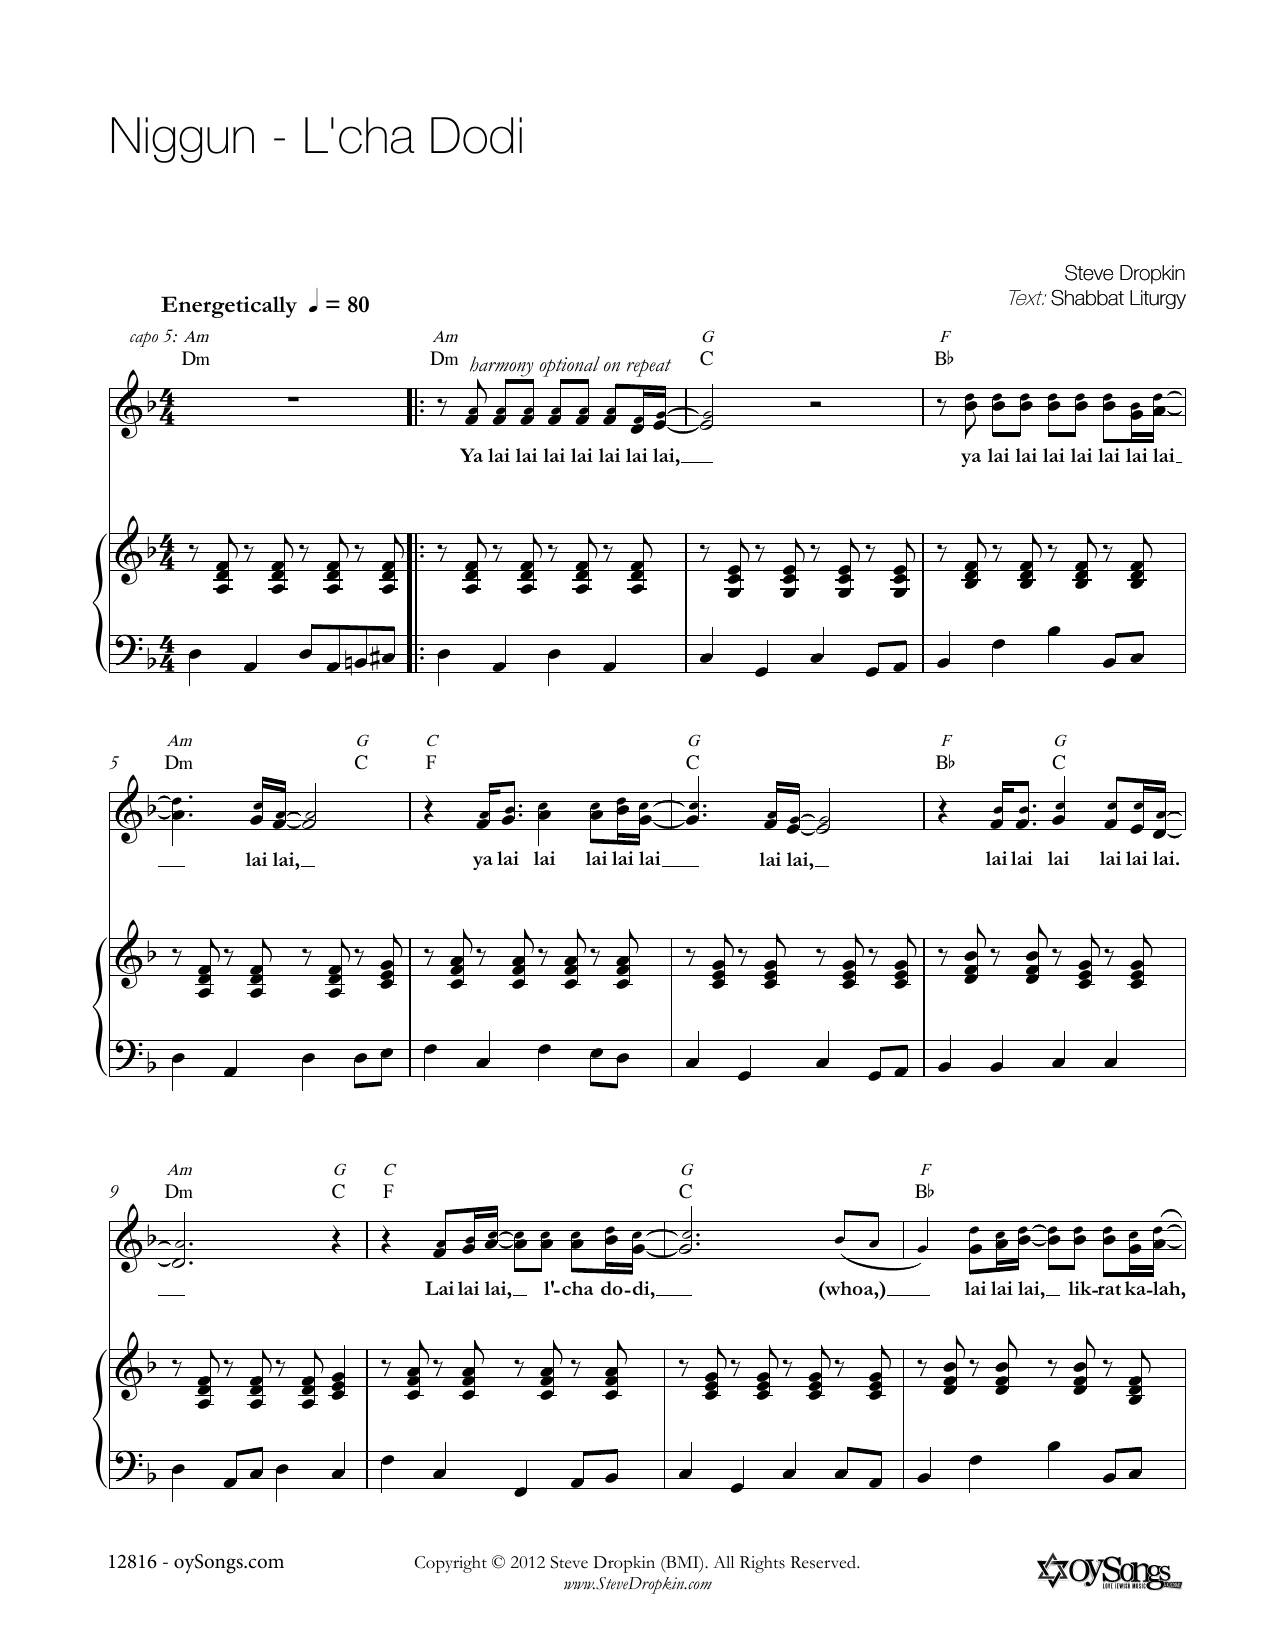 Niggun - L'chah Dodi Sheet Music